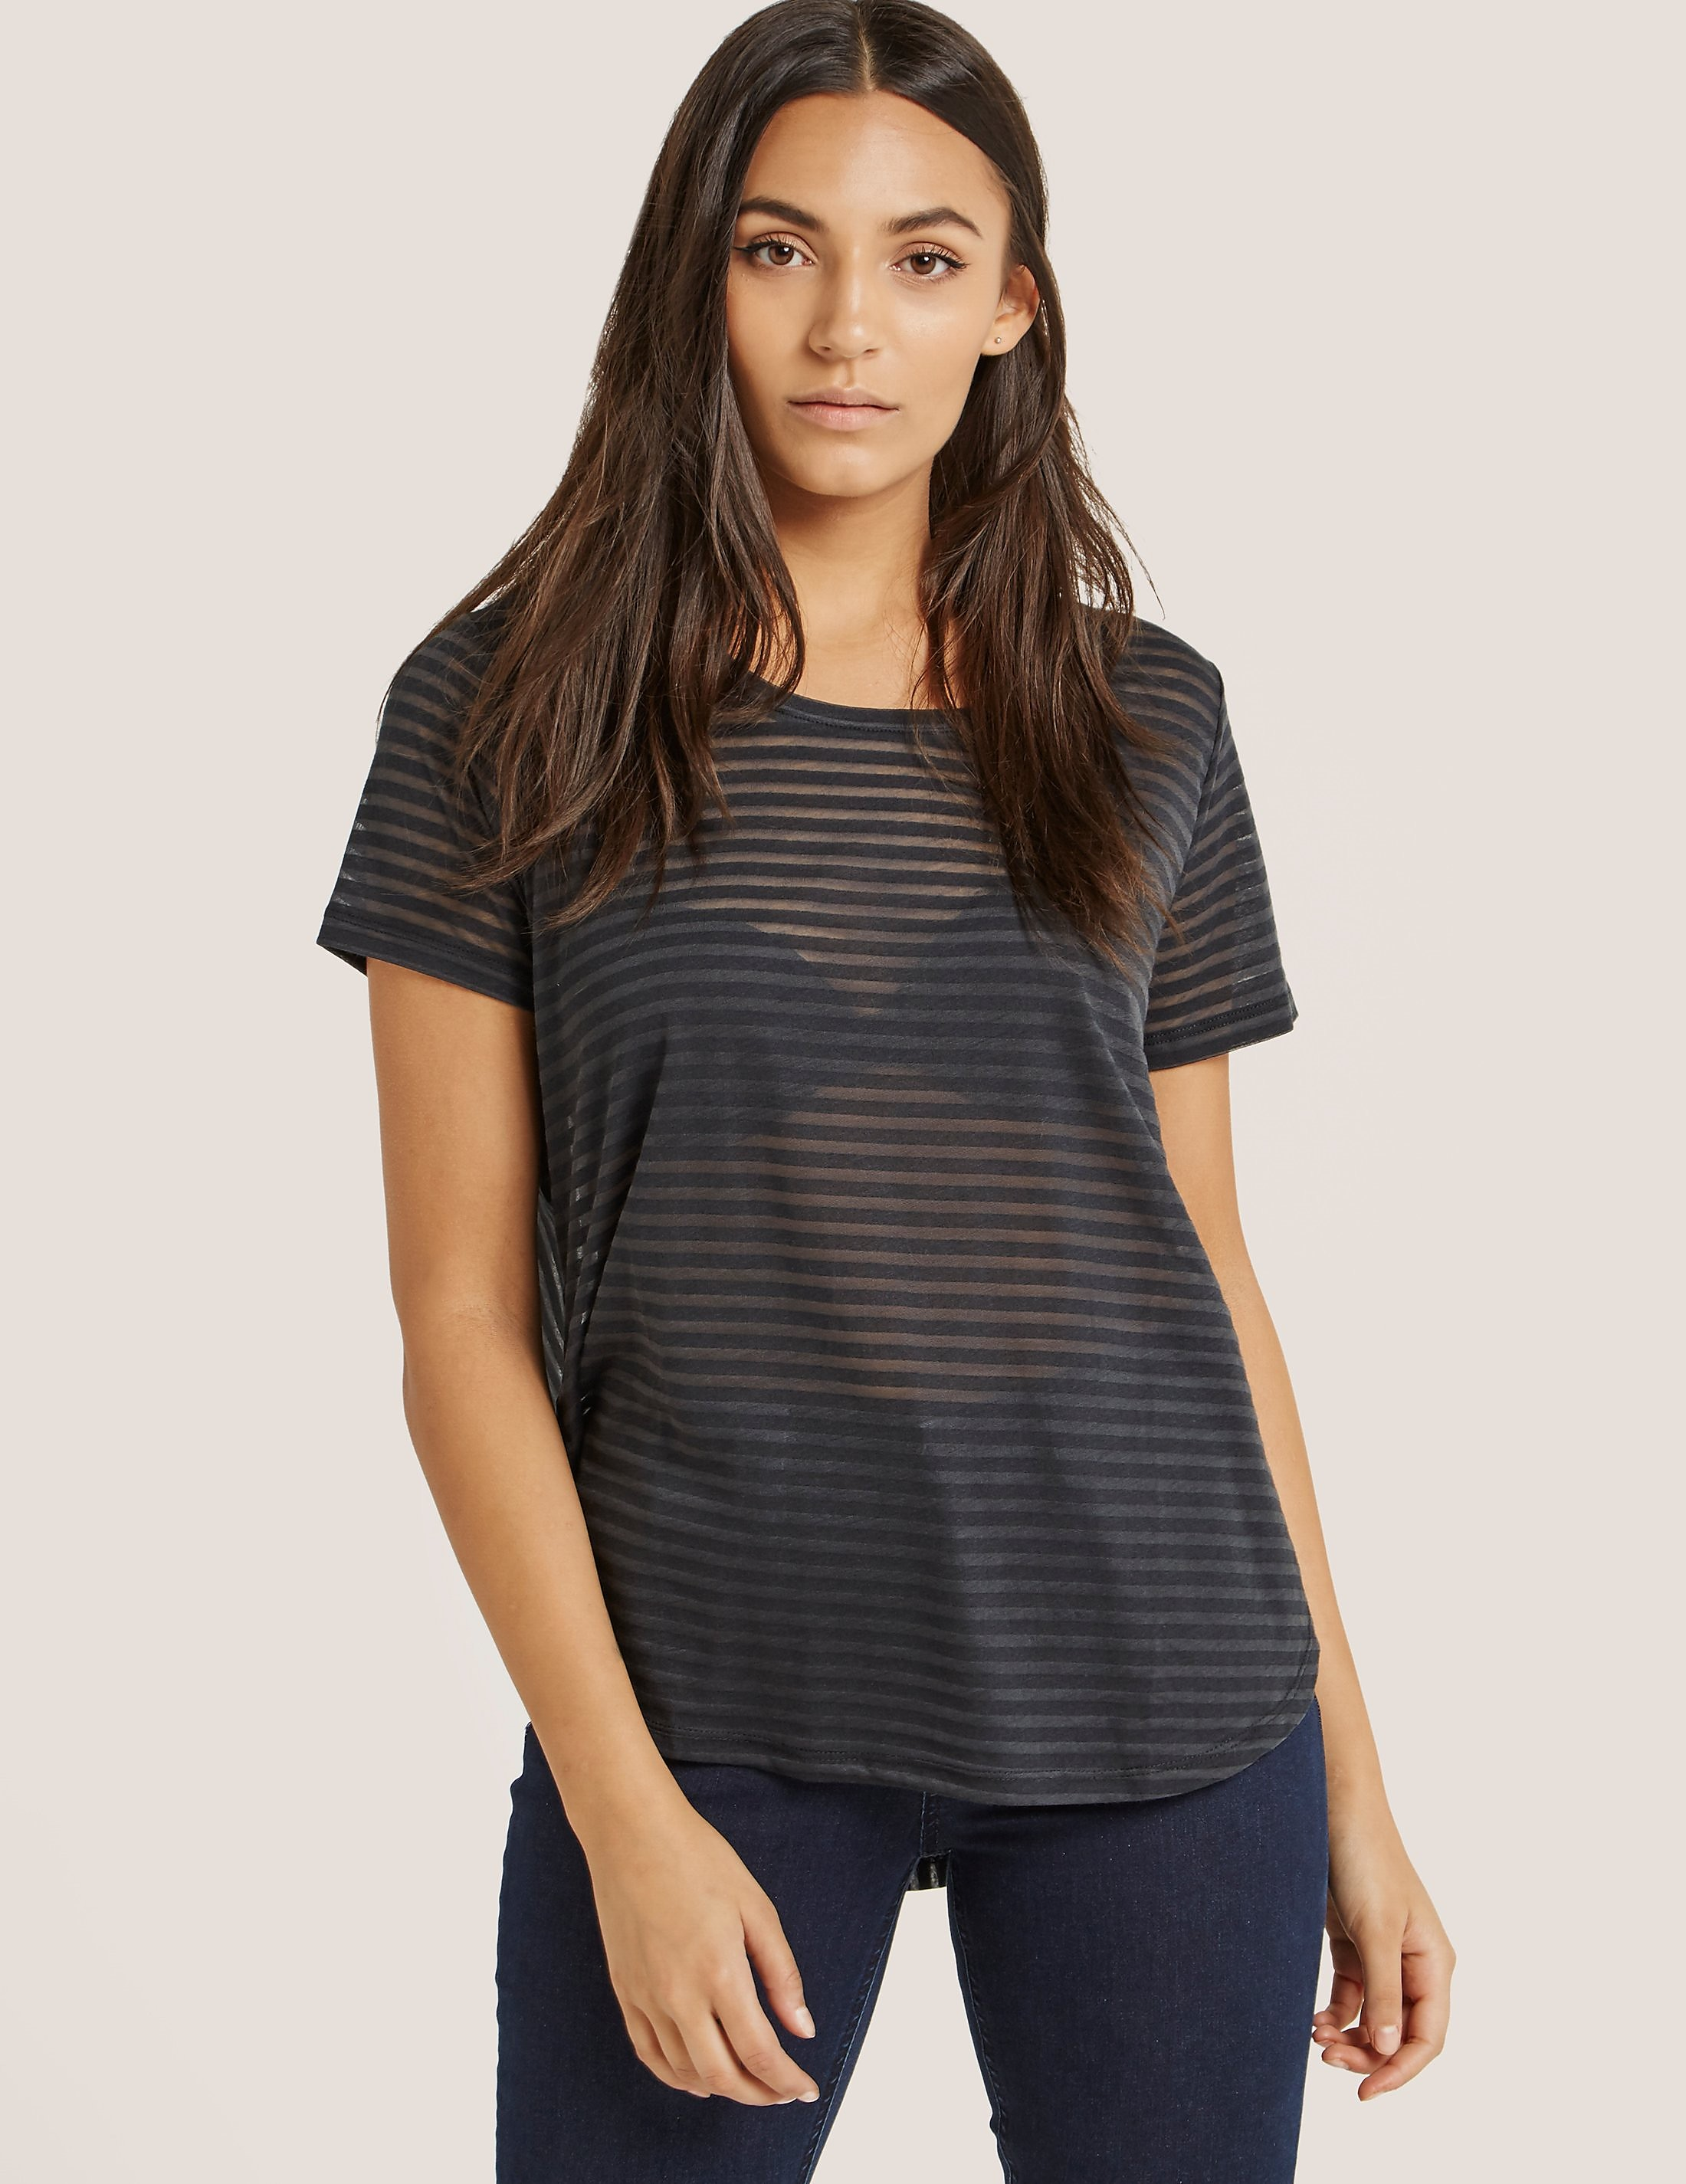 Maison Scotch Stripe Burn Out T-Shirt